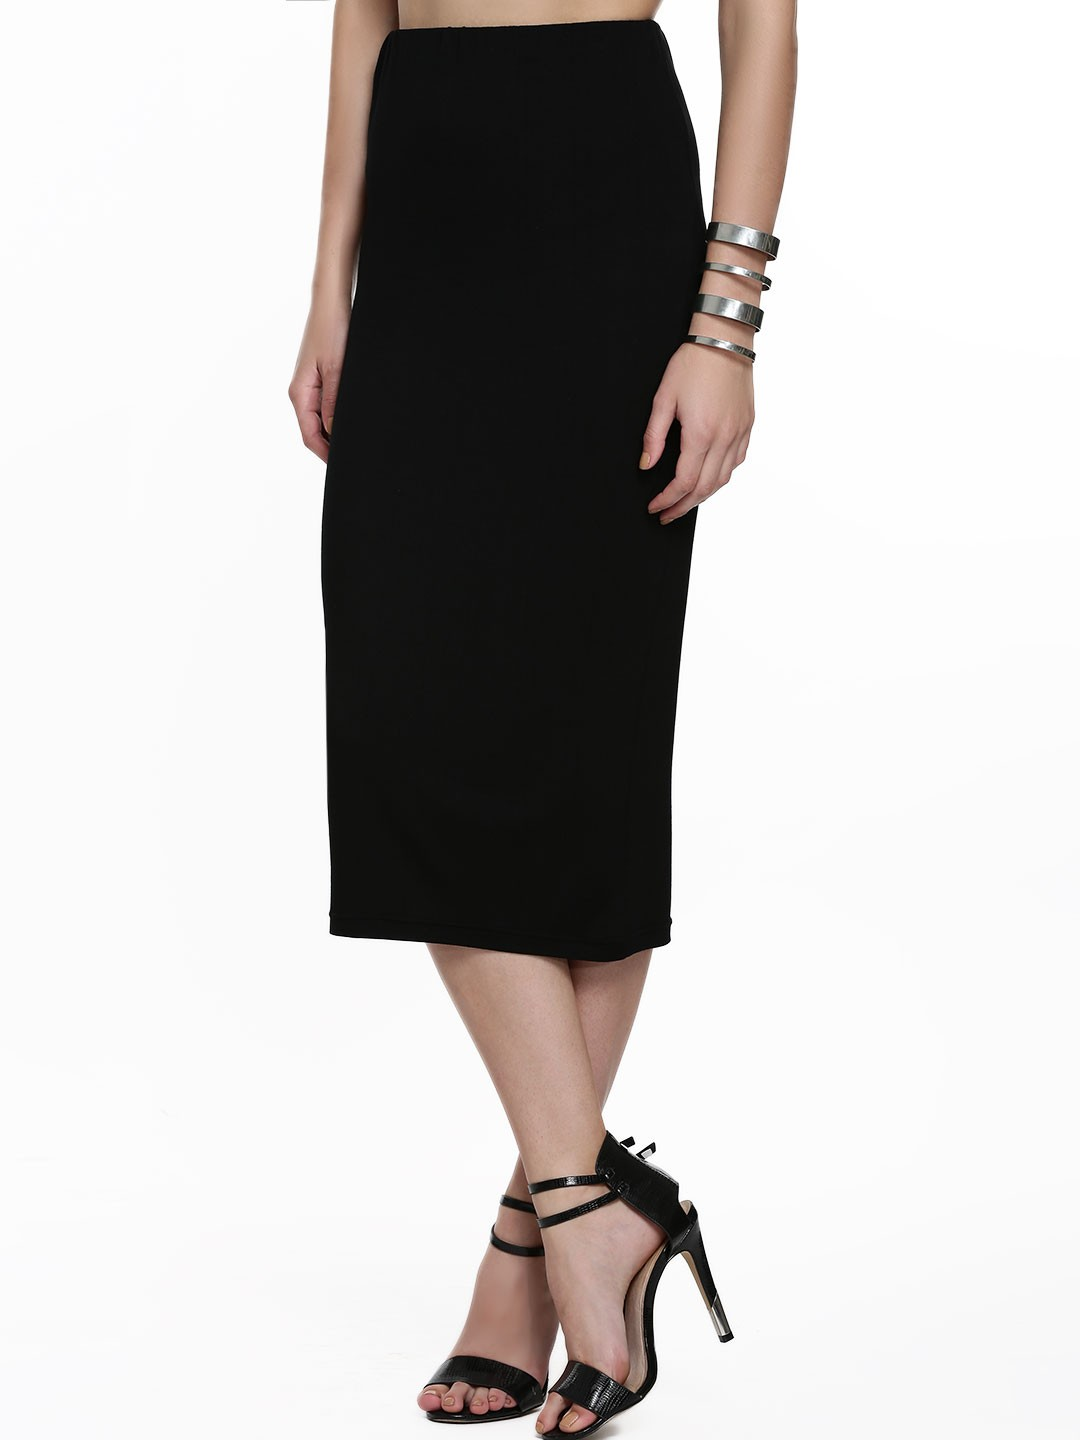 Buy KOOVS Midi Pencil Skirt For Women - Women's Black Pencil ...